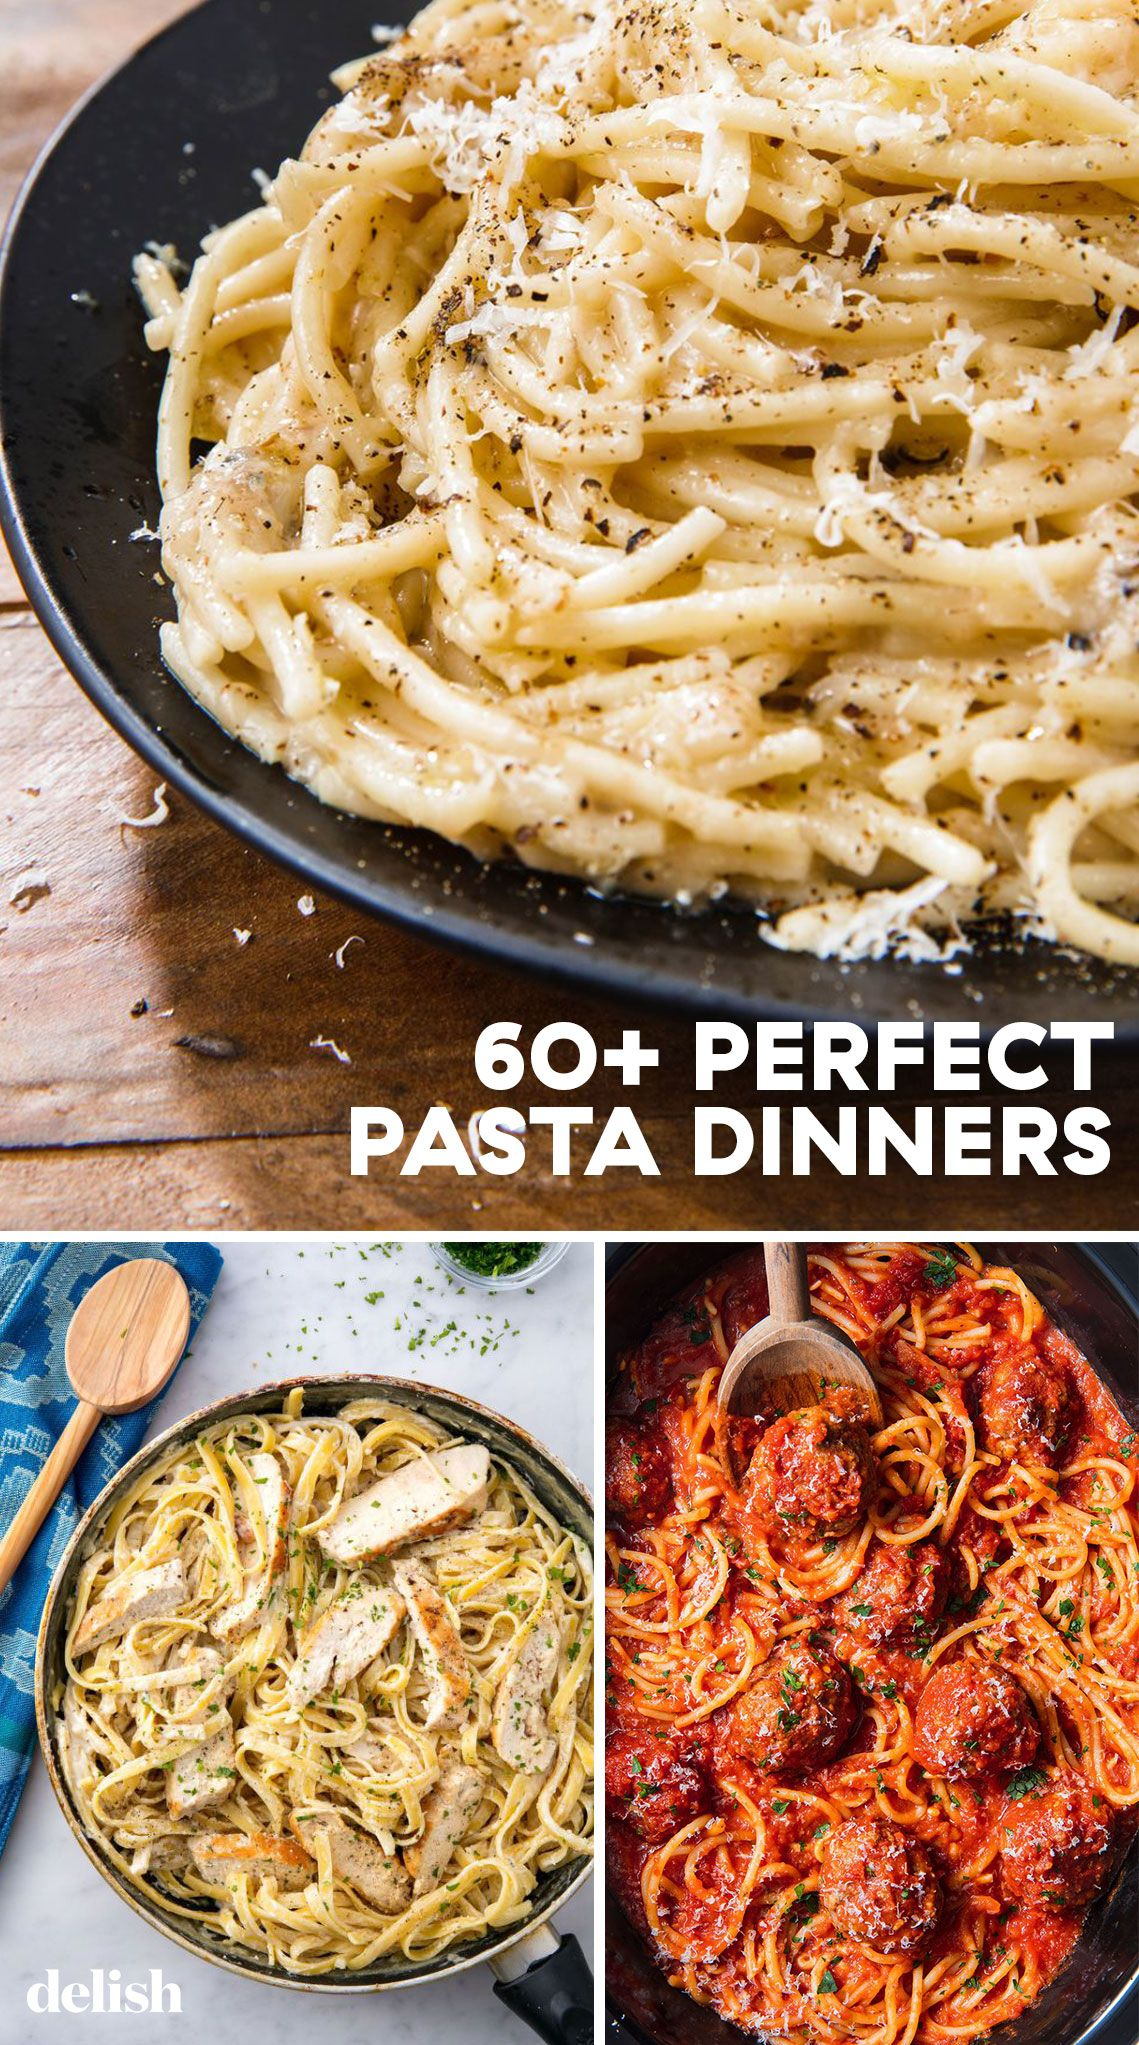 60+ Perfect Pasta Dinner Recipes images